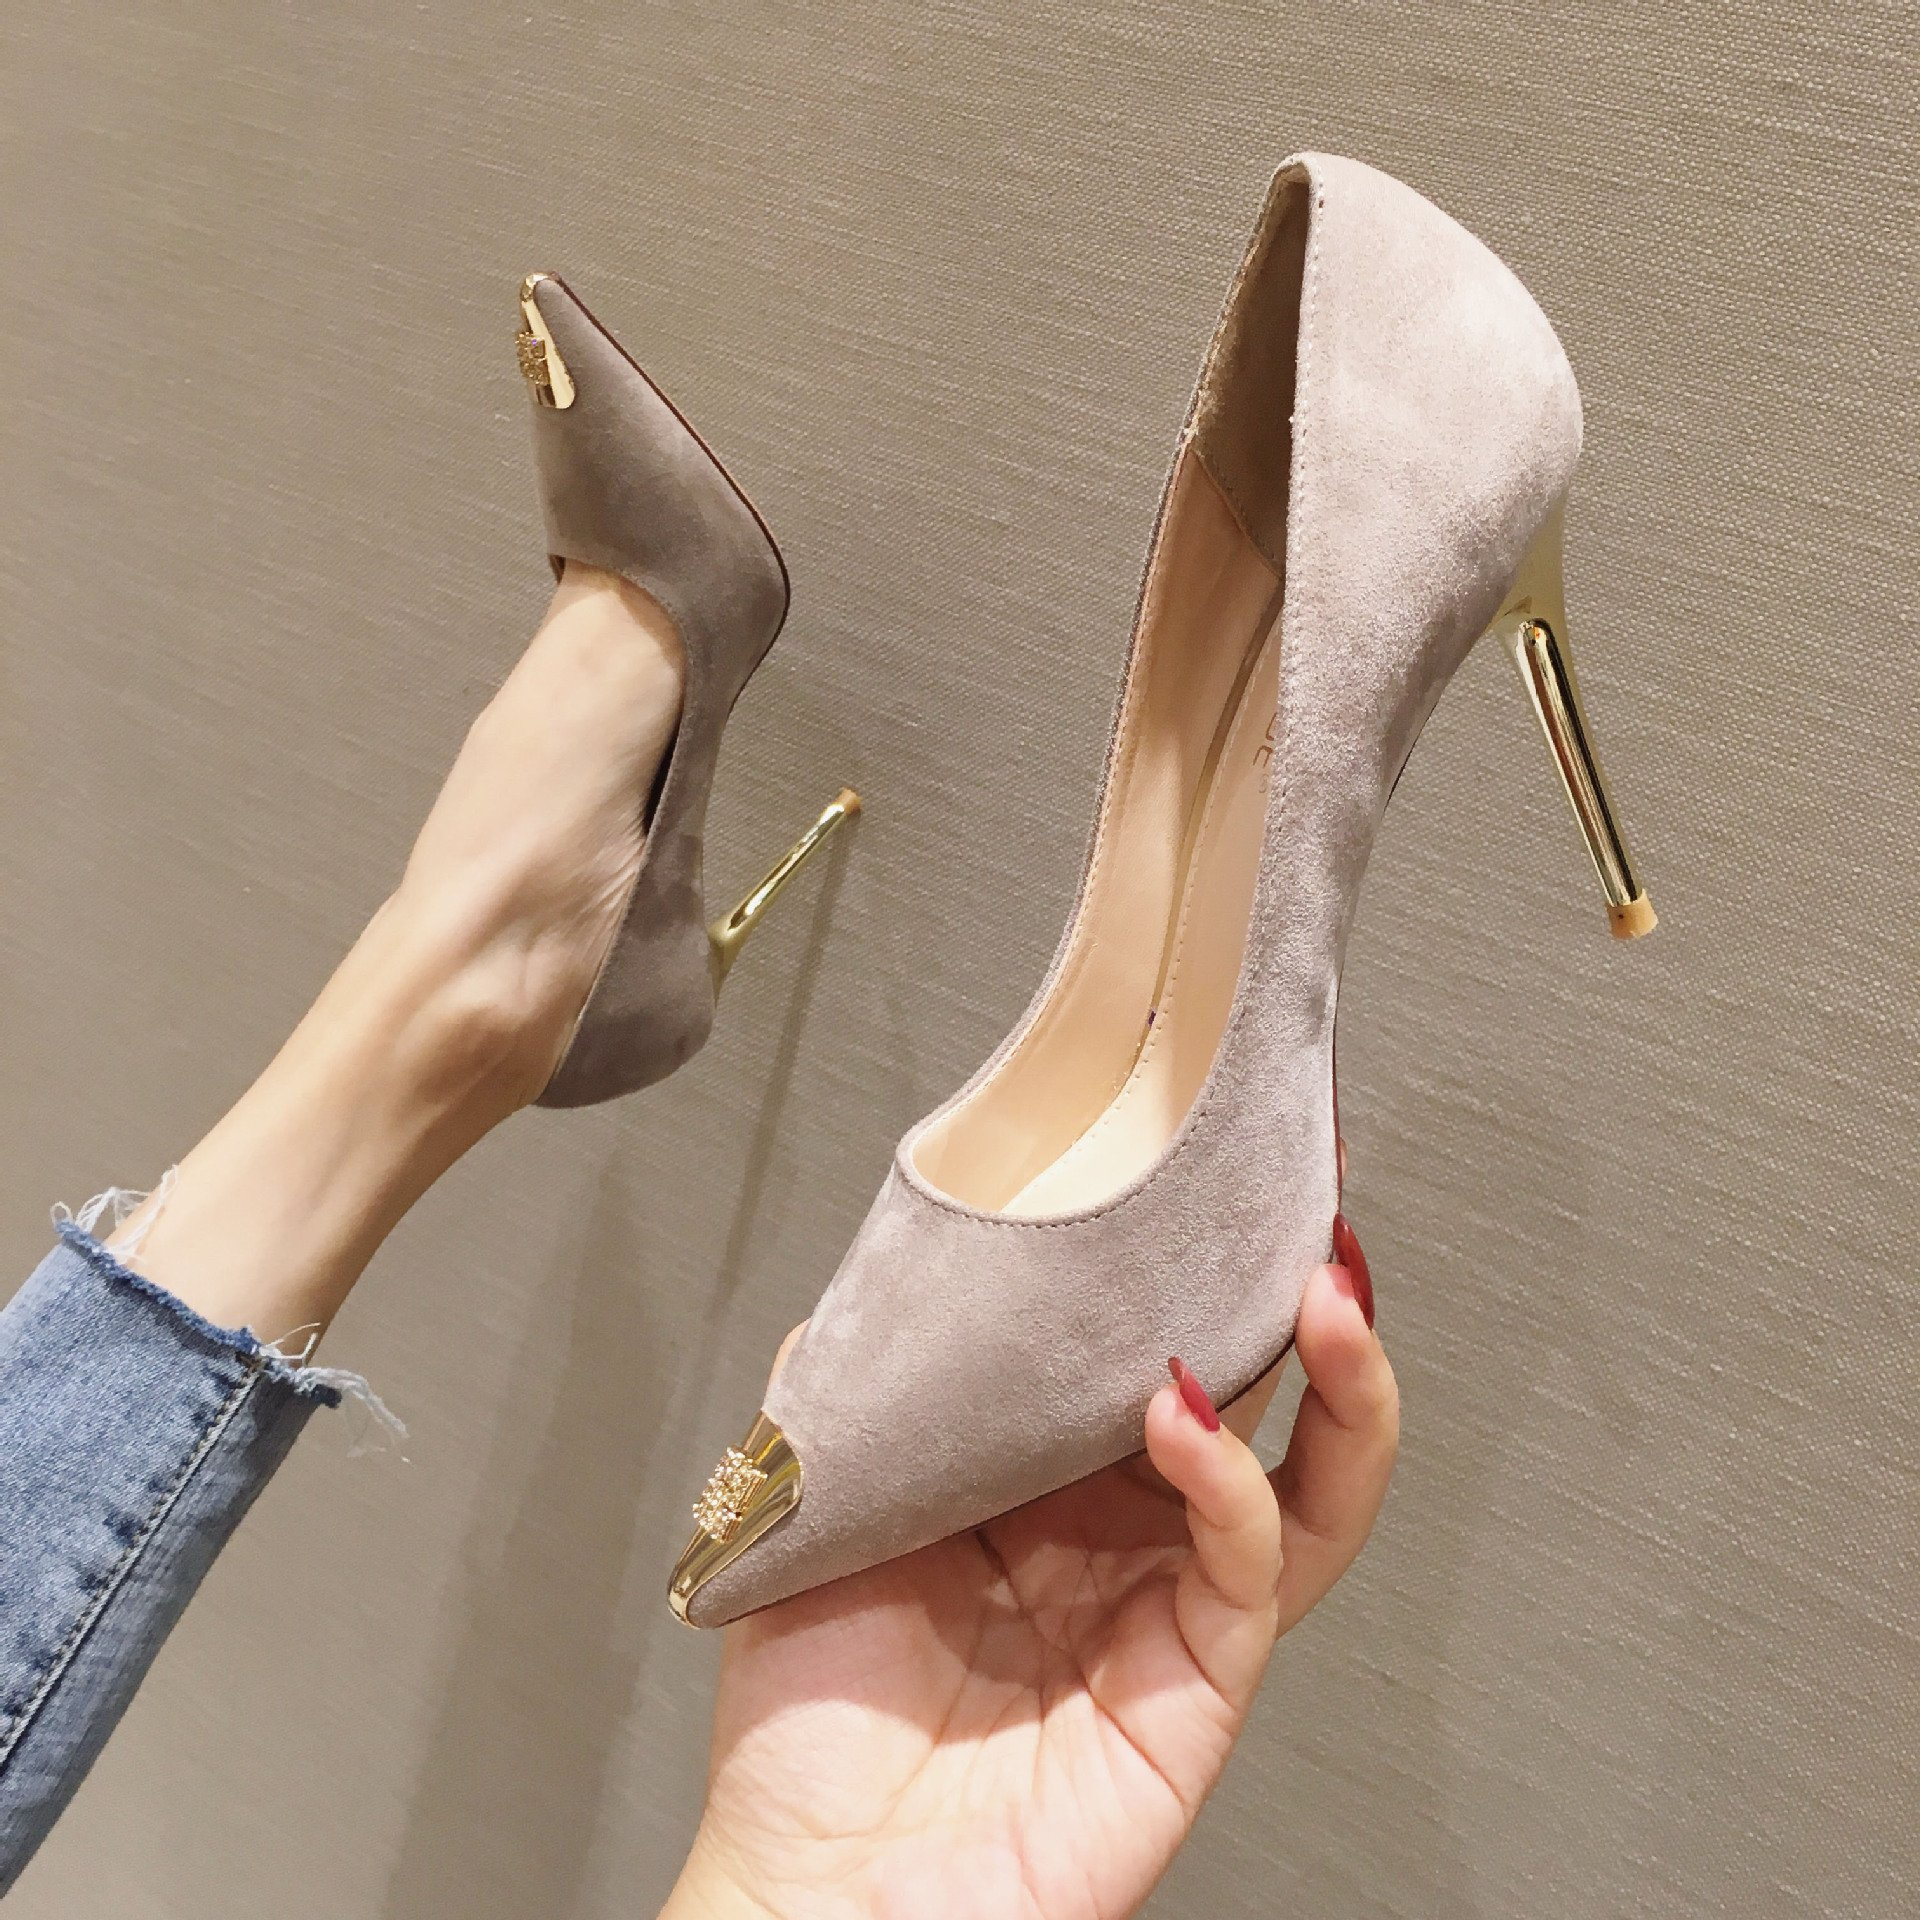 Trendy Women High Heels Waterproof Shoes For Men Blush Court Shoes Good Running Shoes Powerlifting Shoes Toddler Light Up Shoes Blue Strappy Heels